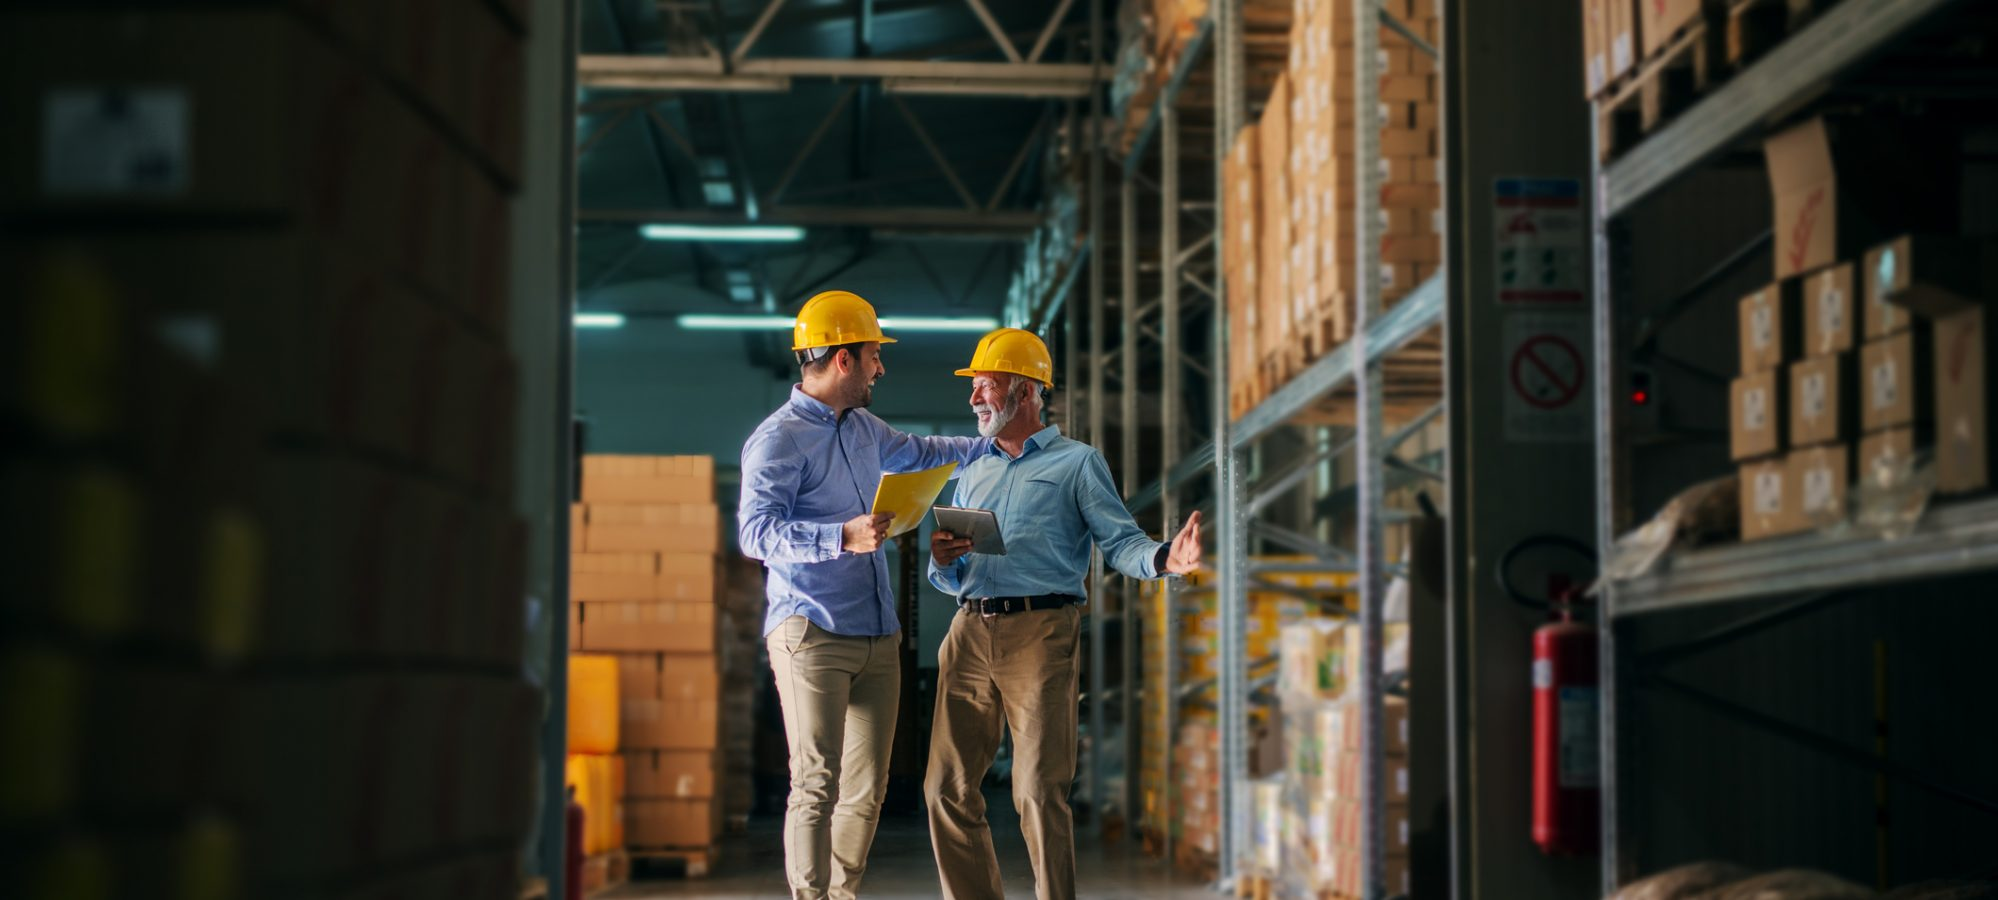 Image of two men standing in warehouse and valuing inventory